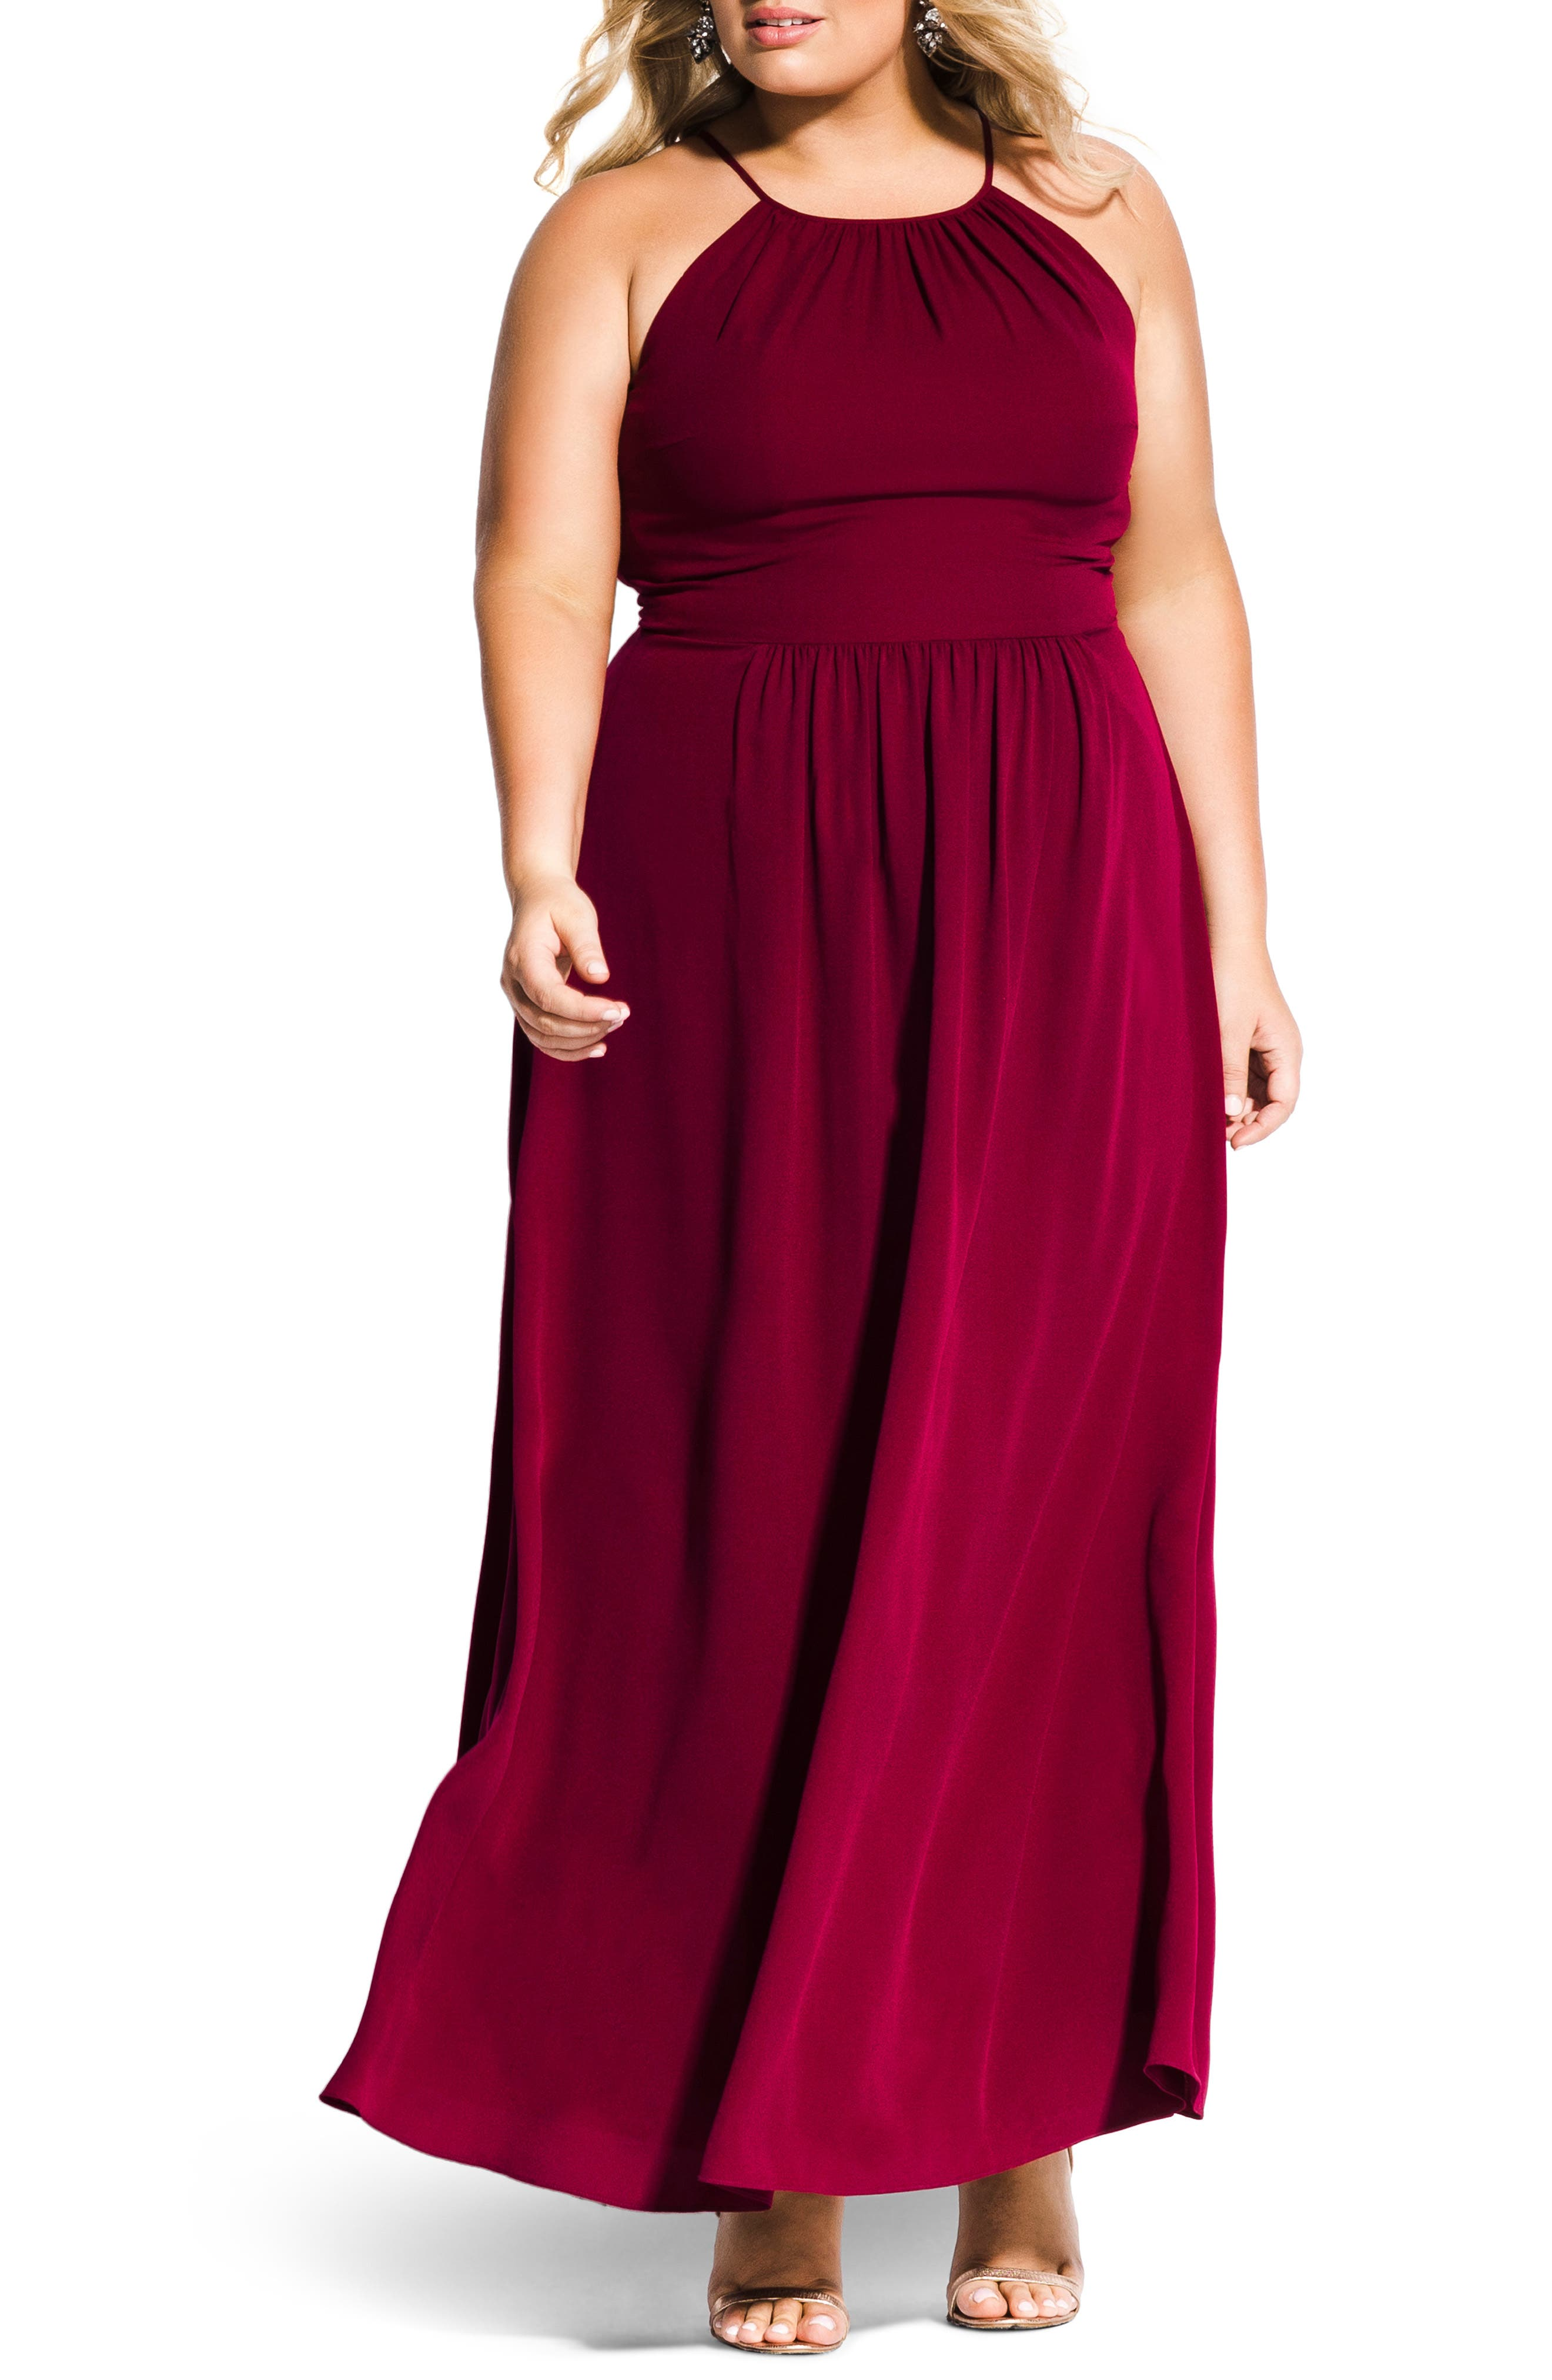 d3b2c4dfad4 Plus-Size Bridesmaids Dresses. Miss Jessica Maxi Dress From  City Chic